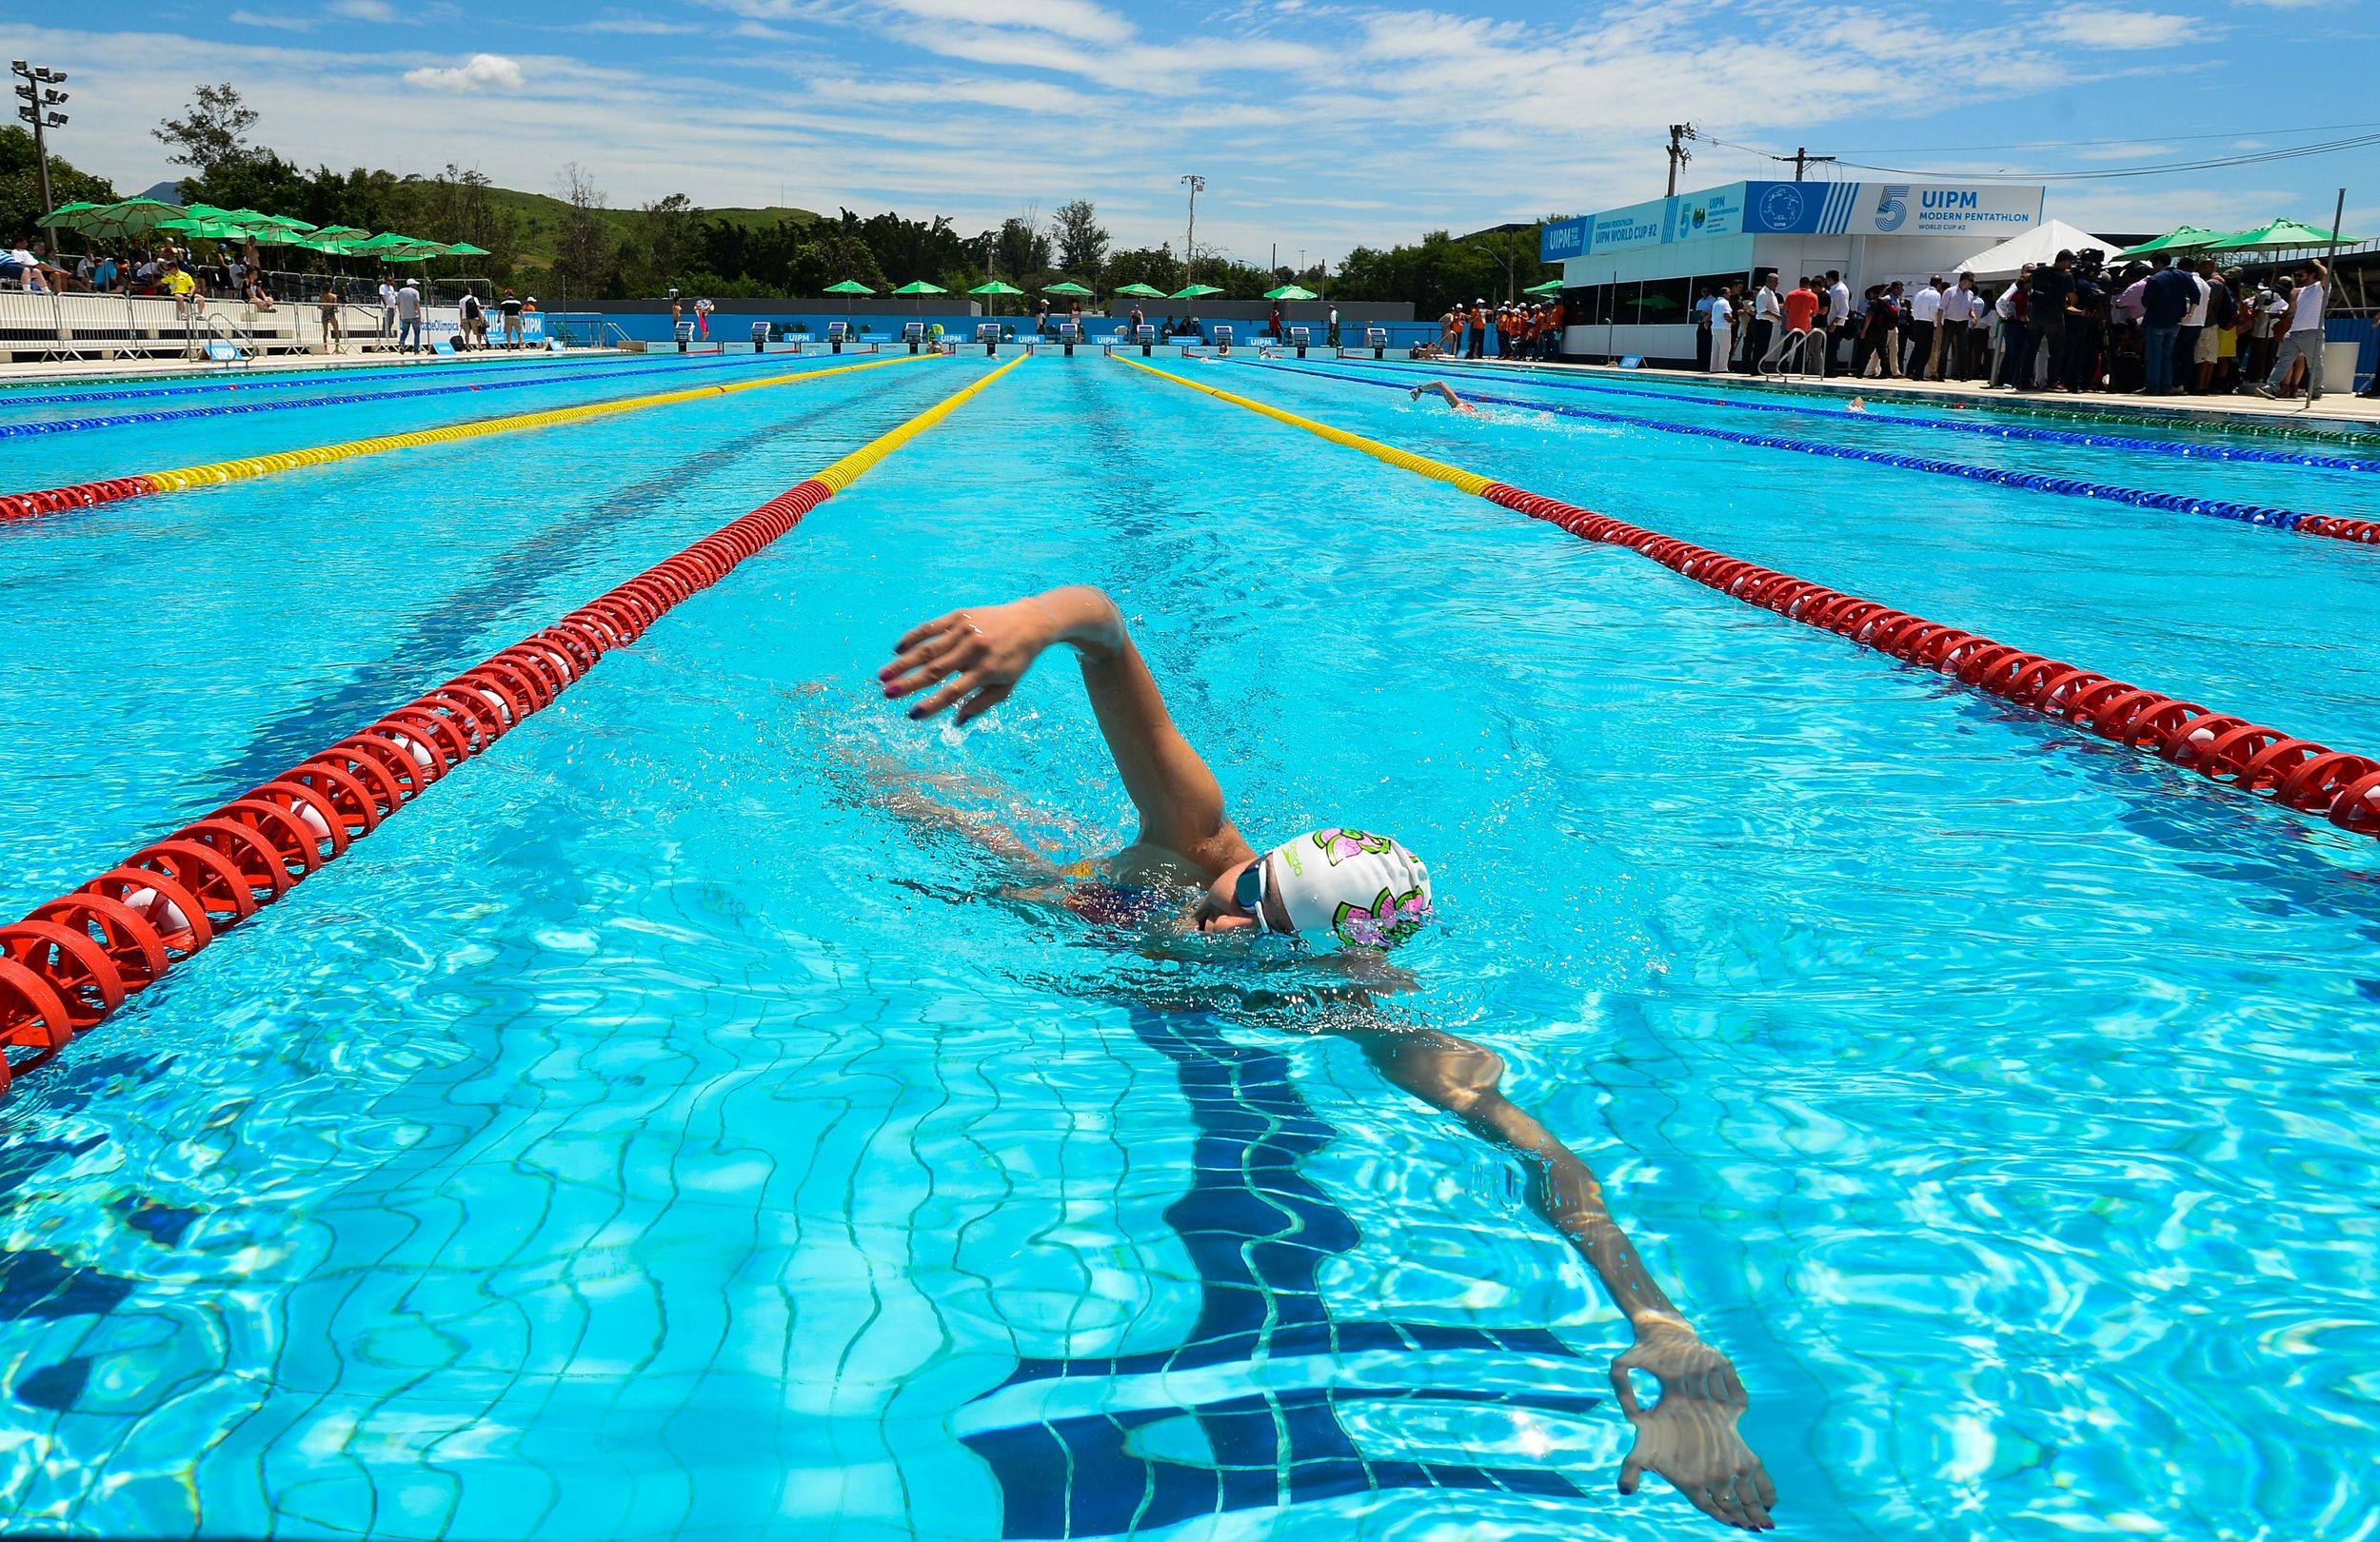 A WOMAN PRACTICES IN THE AQUATICS COMPOUND IN RIO AHEAD OF THE 2016 OLYMPIC GAMES. IMAGE BY TÂNIA RÊGO/AGÊNCIA BRASIL VIA WIKIMEDIA COMMONS.